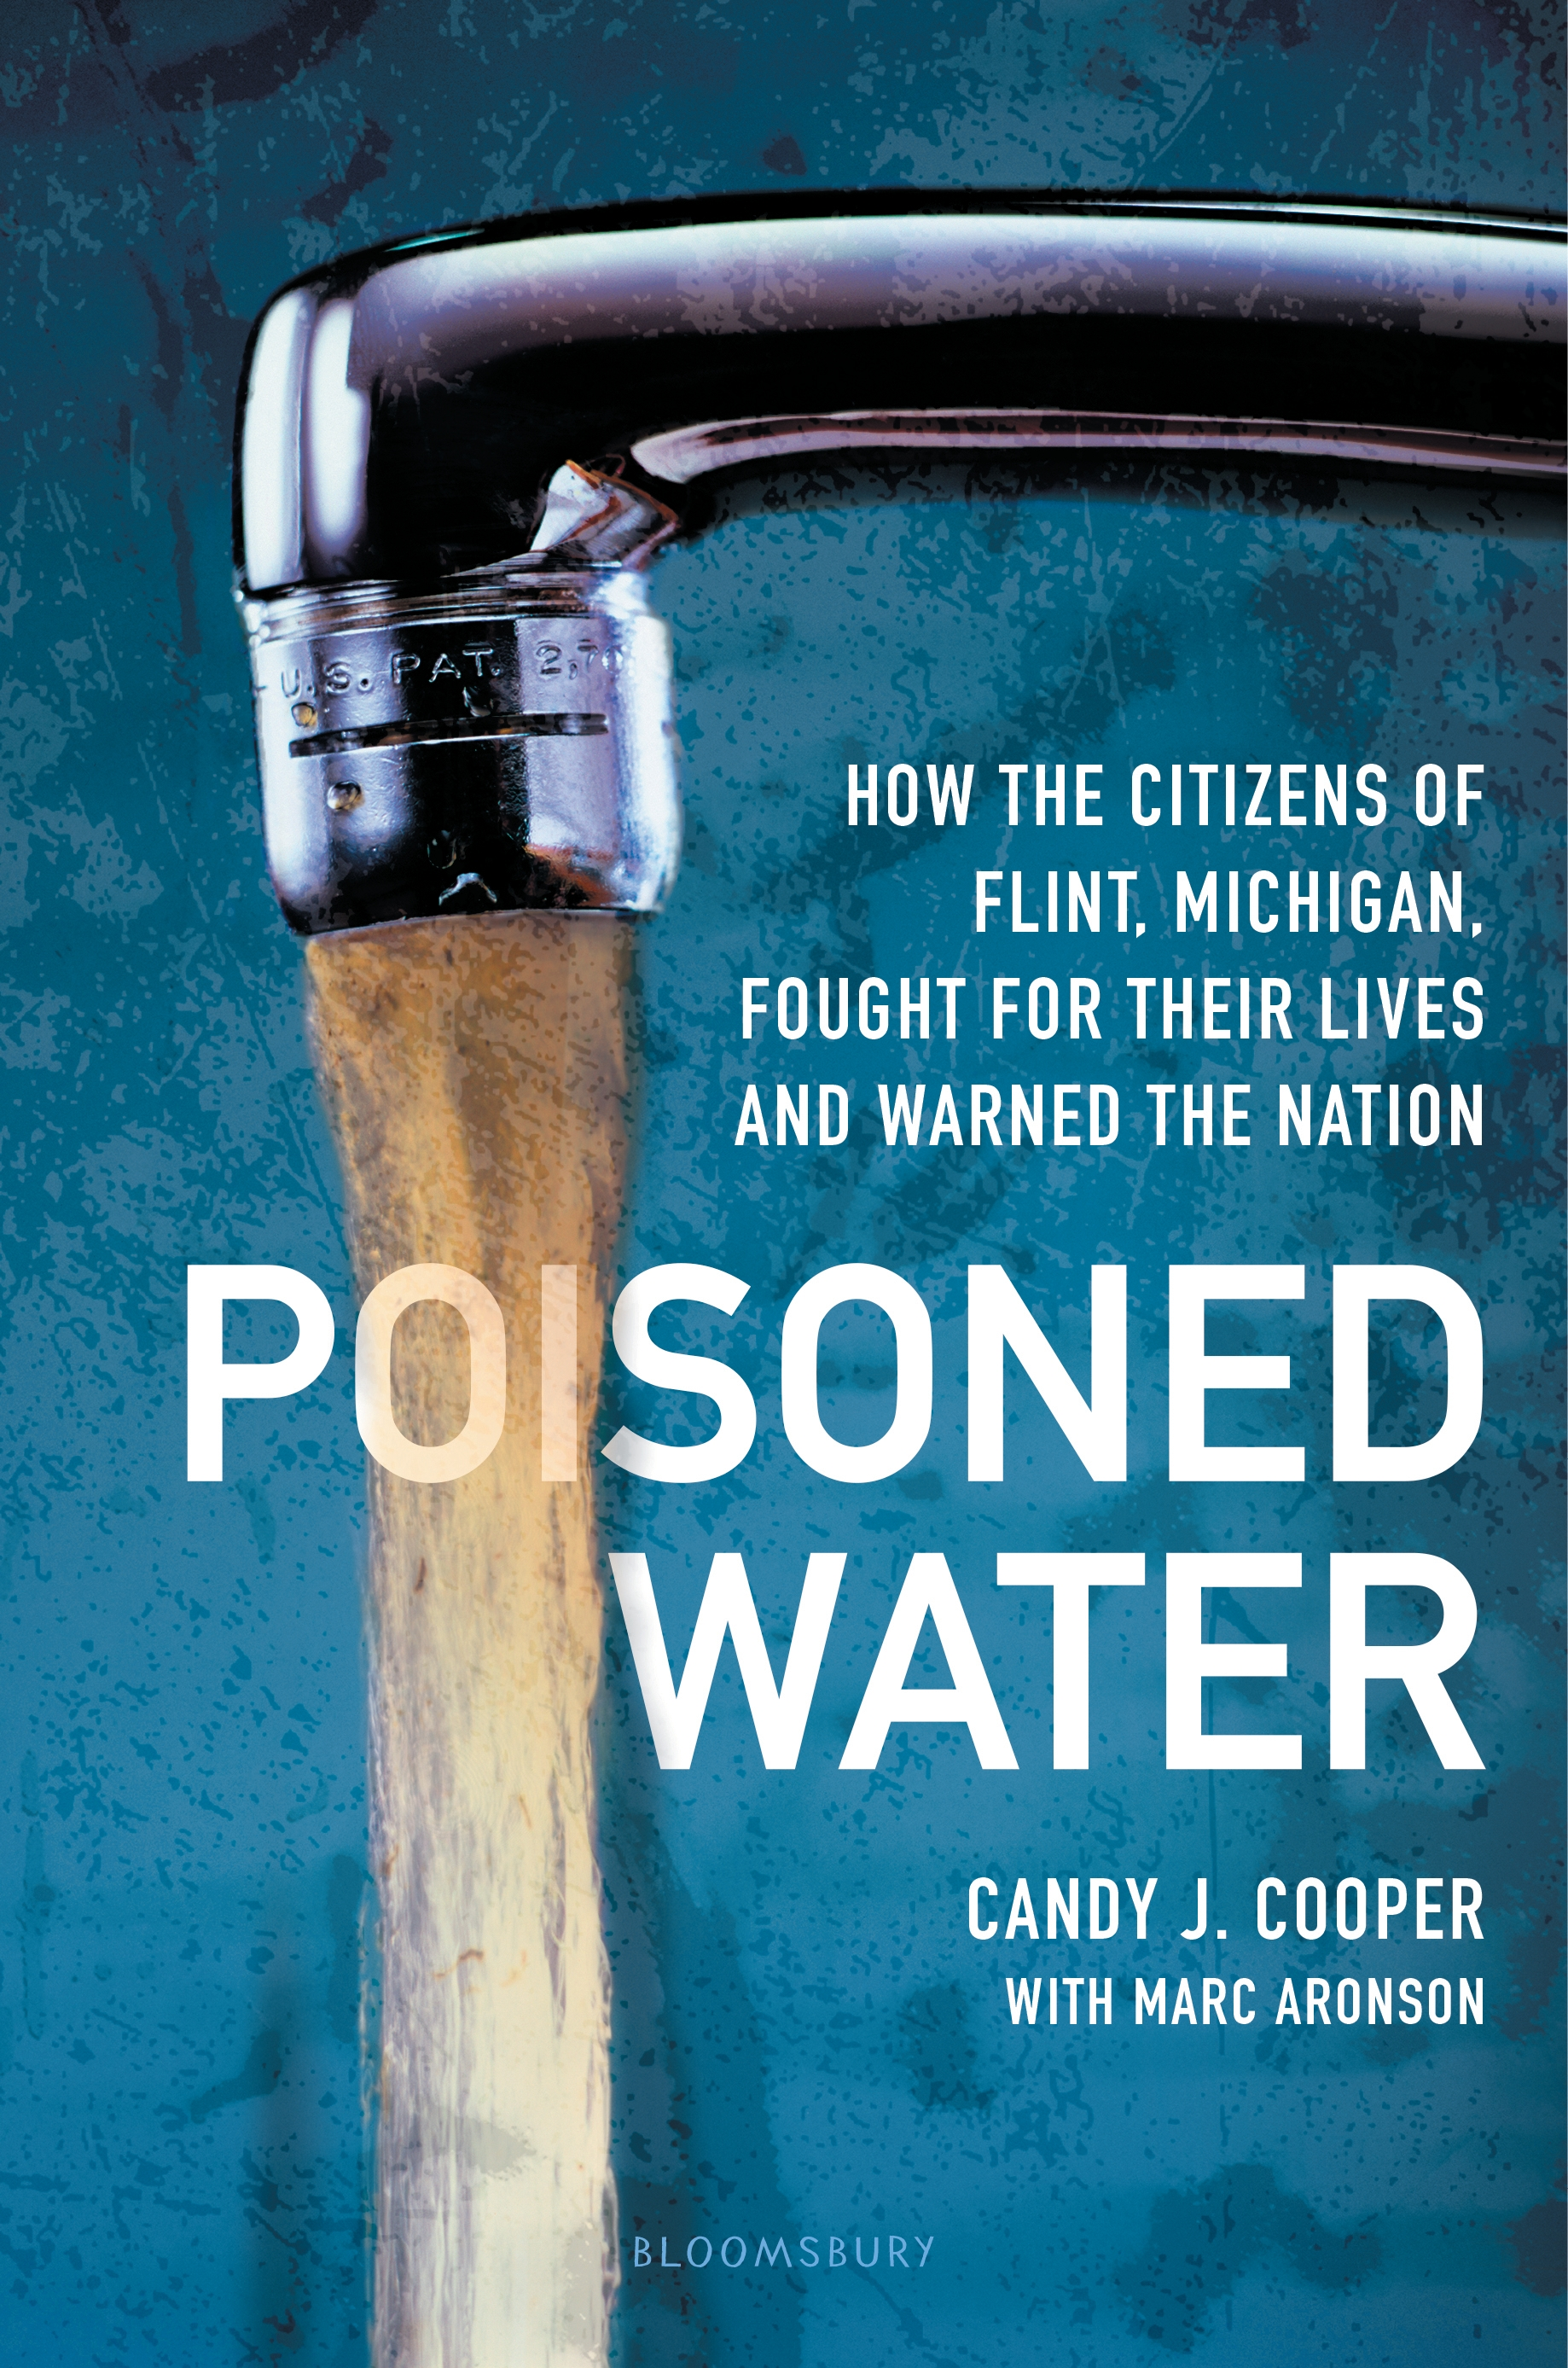 Poisoned Water [electronic resource] : How the Citizens of Flint, Michigan, Fought for Their Lives and Warned the Nation